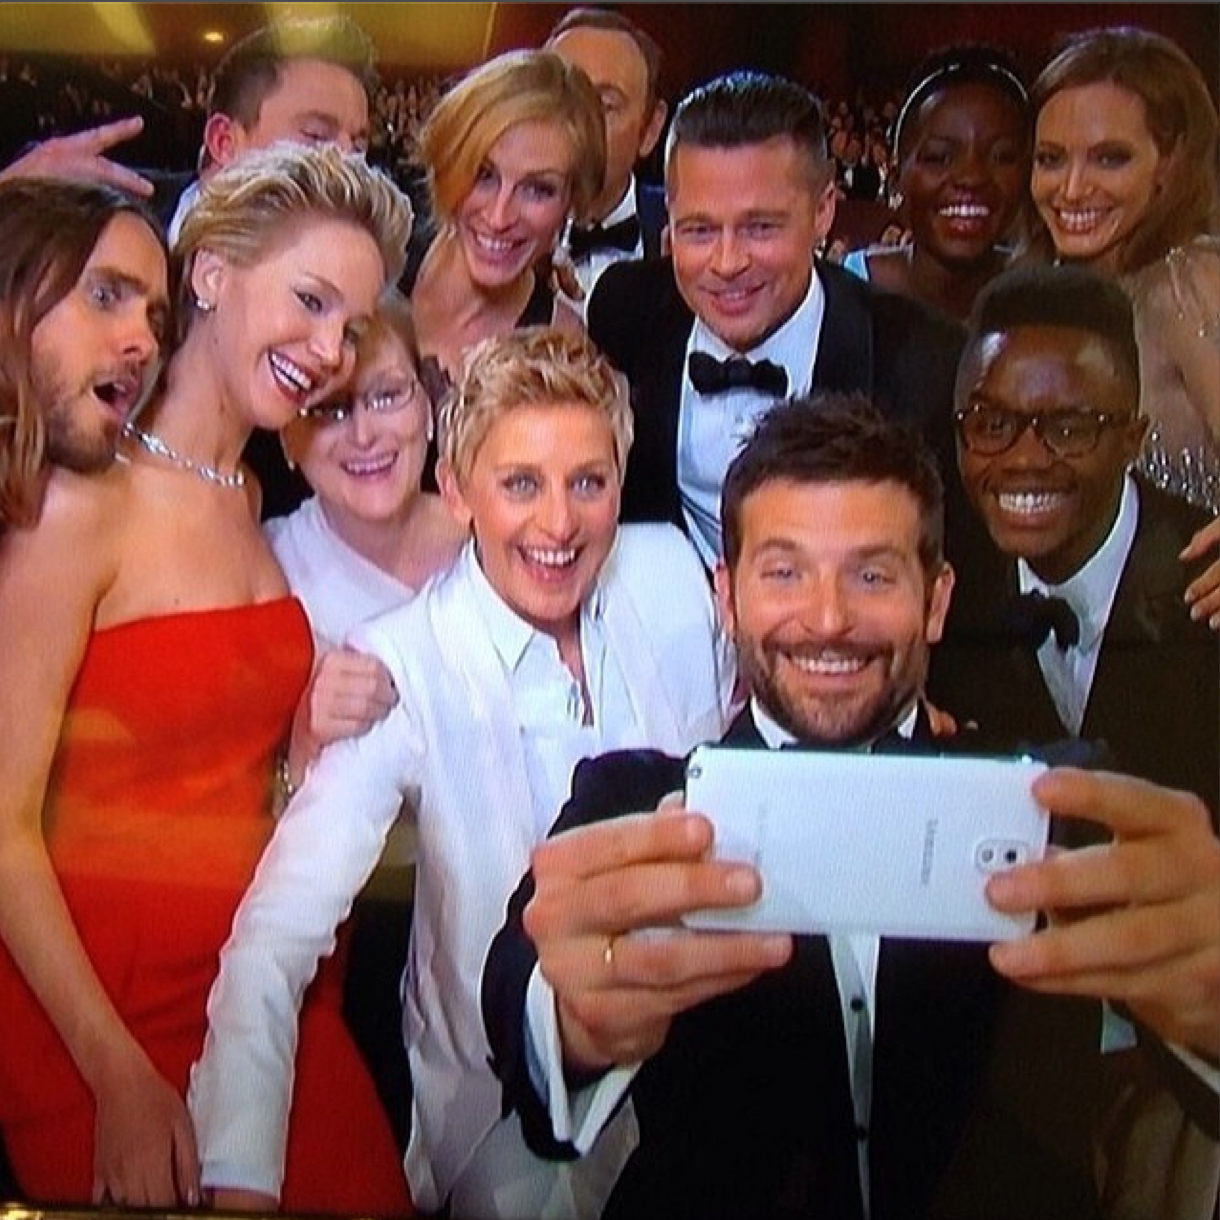 the-best-instagrams-of-the-2014-oscars-17